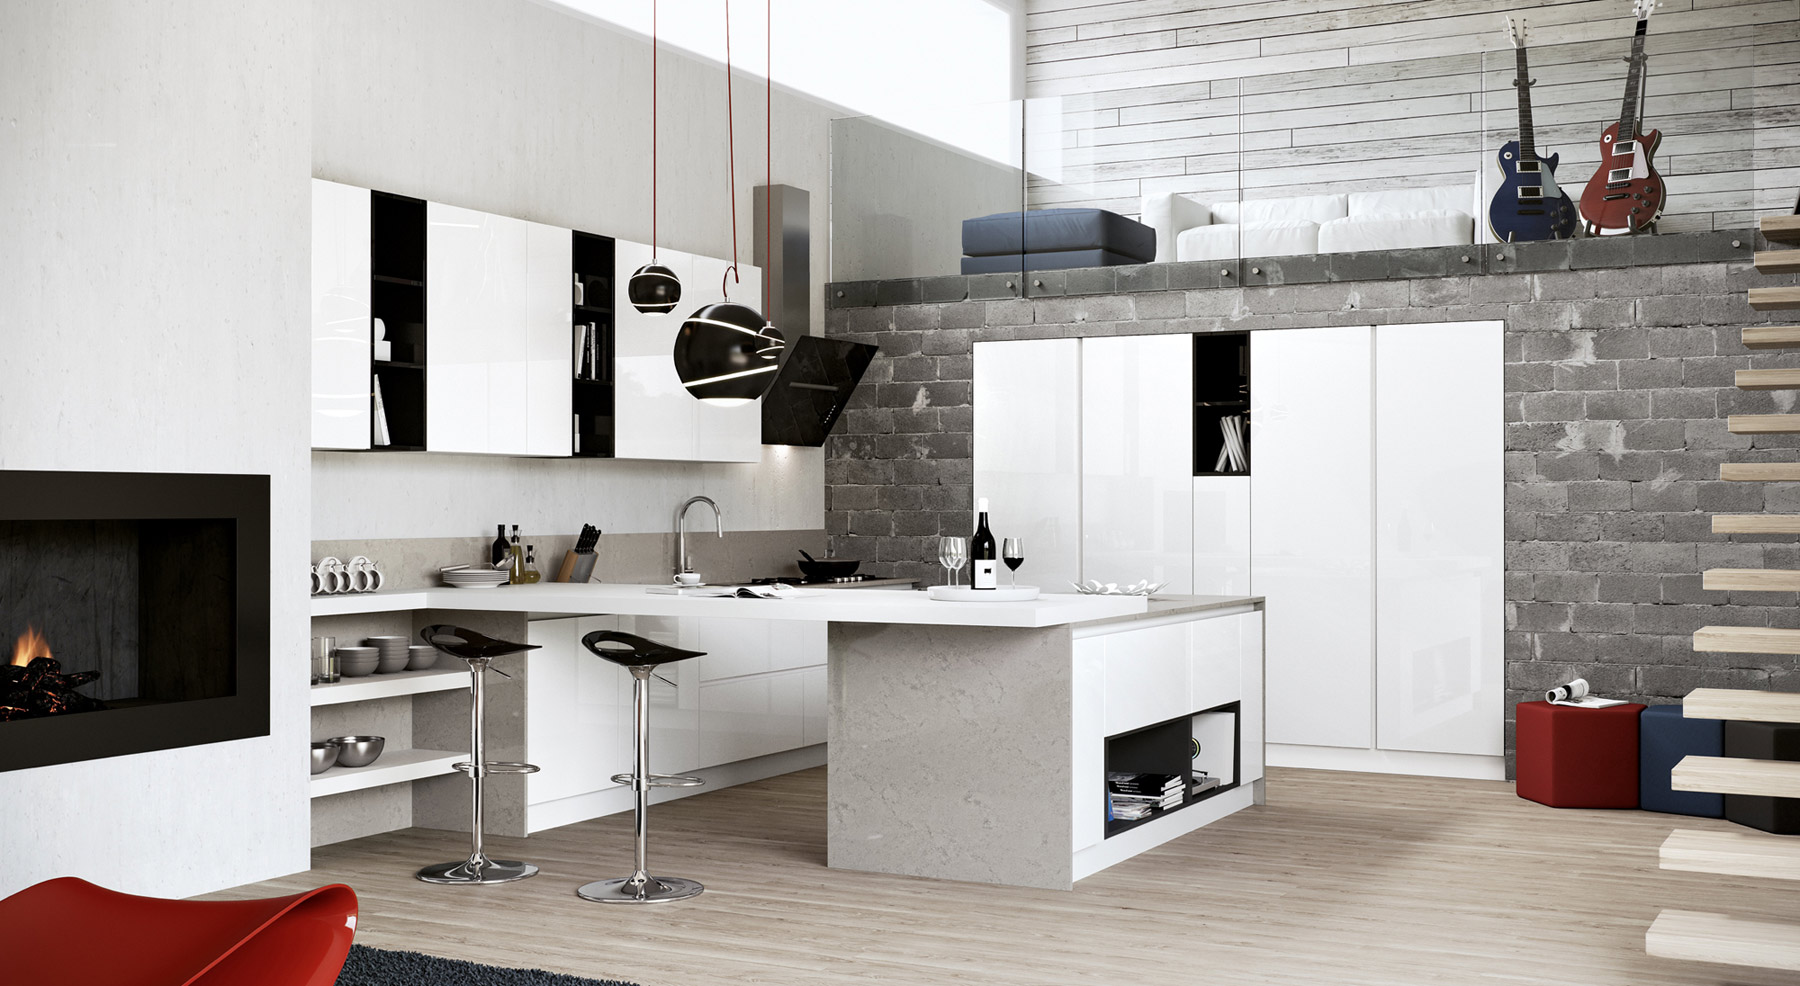 Best Cucine Particolari Moderne Pictures - Ideas & Design 2017 ...